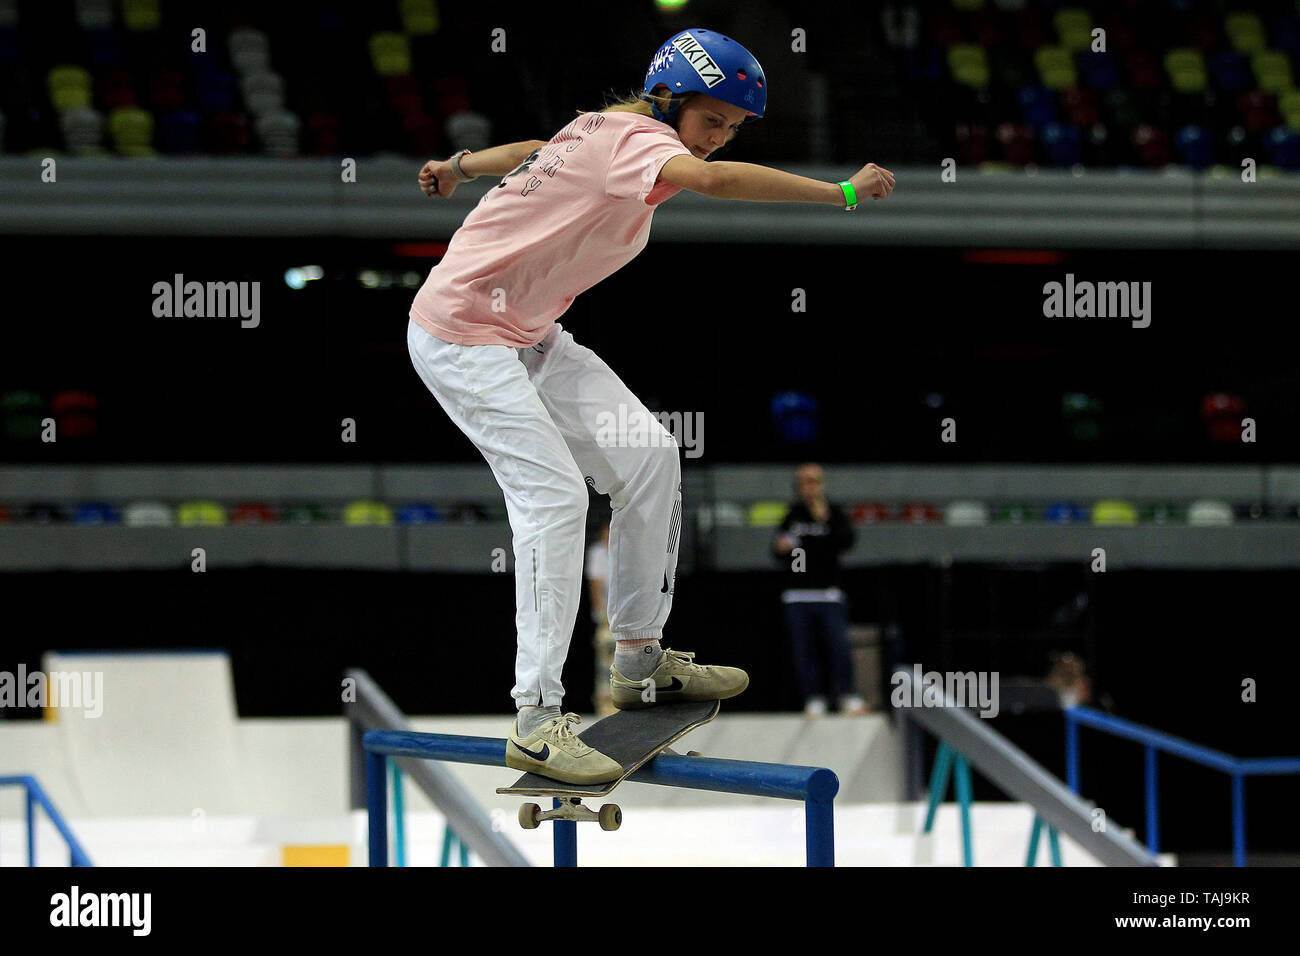 A female skater pulls a grind during the men's quarter